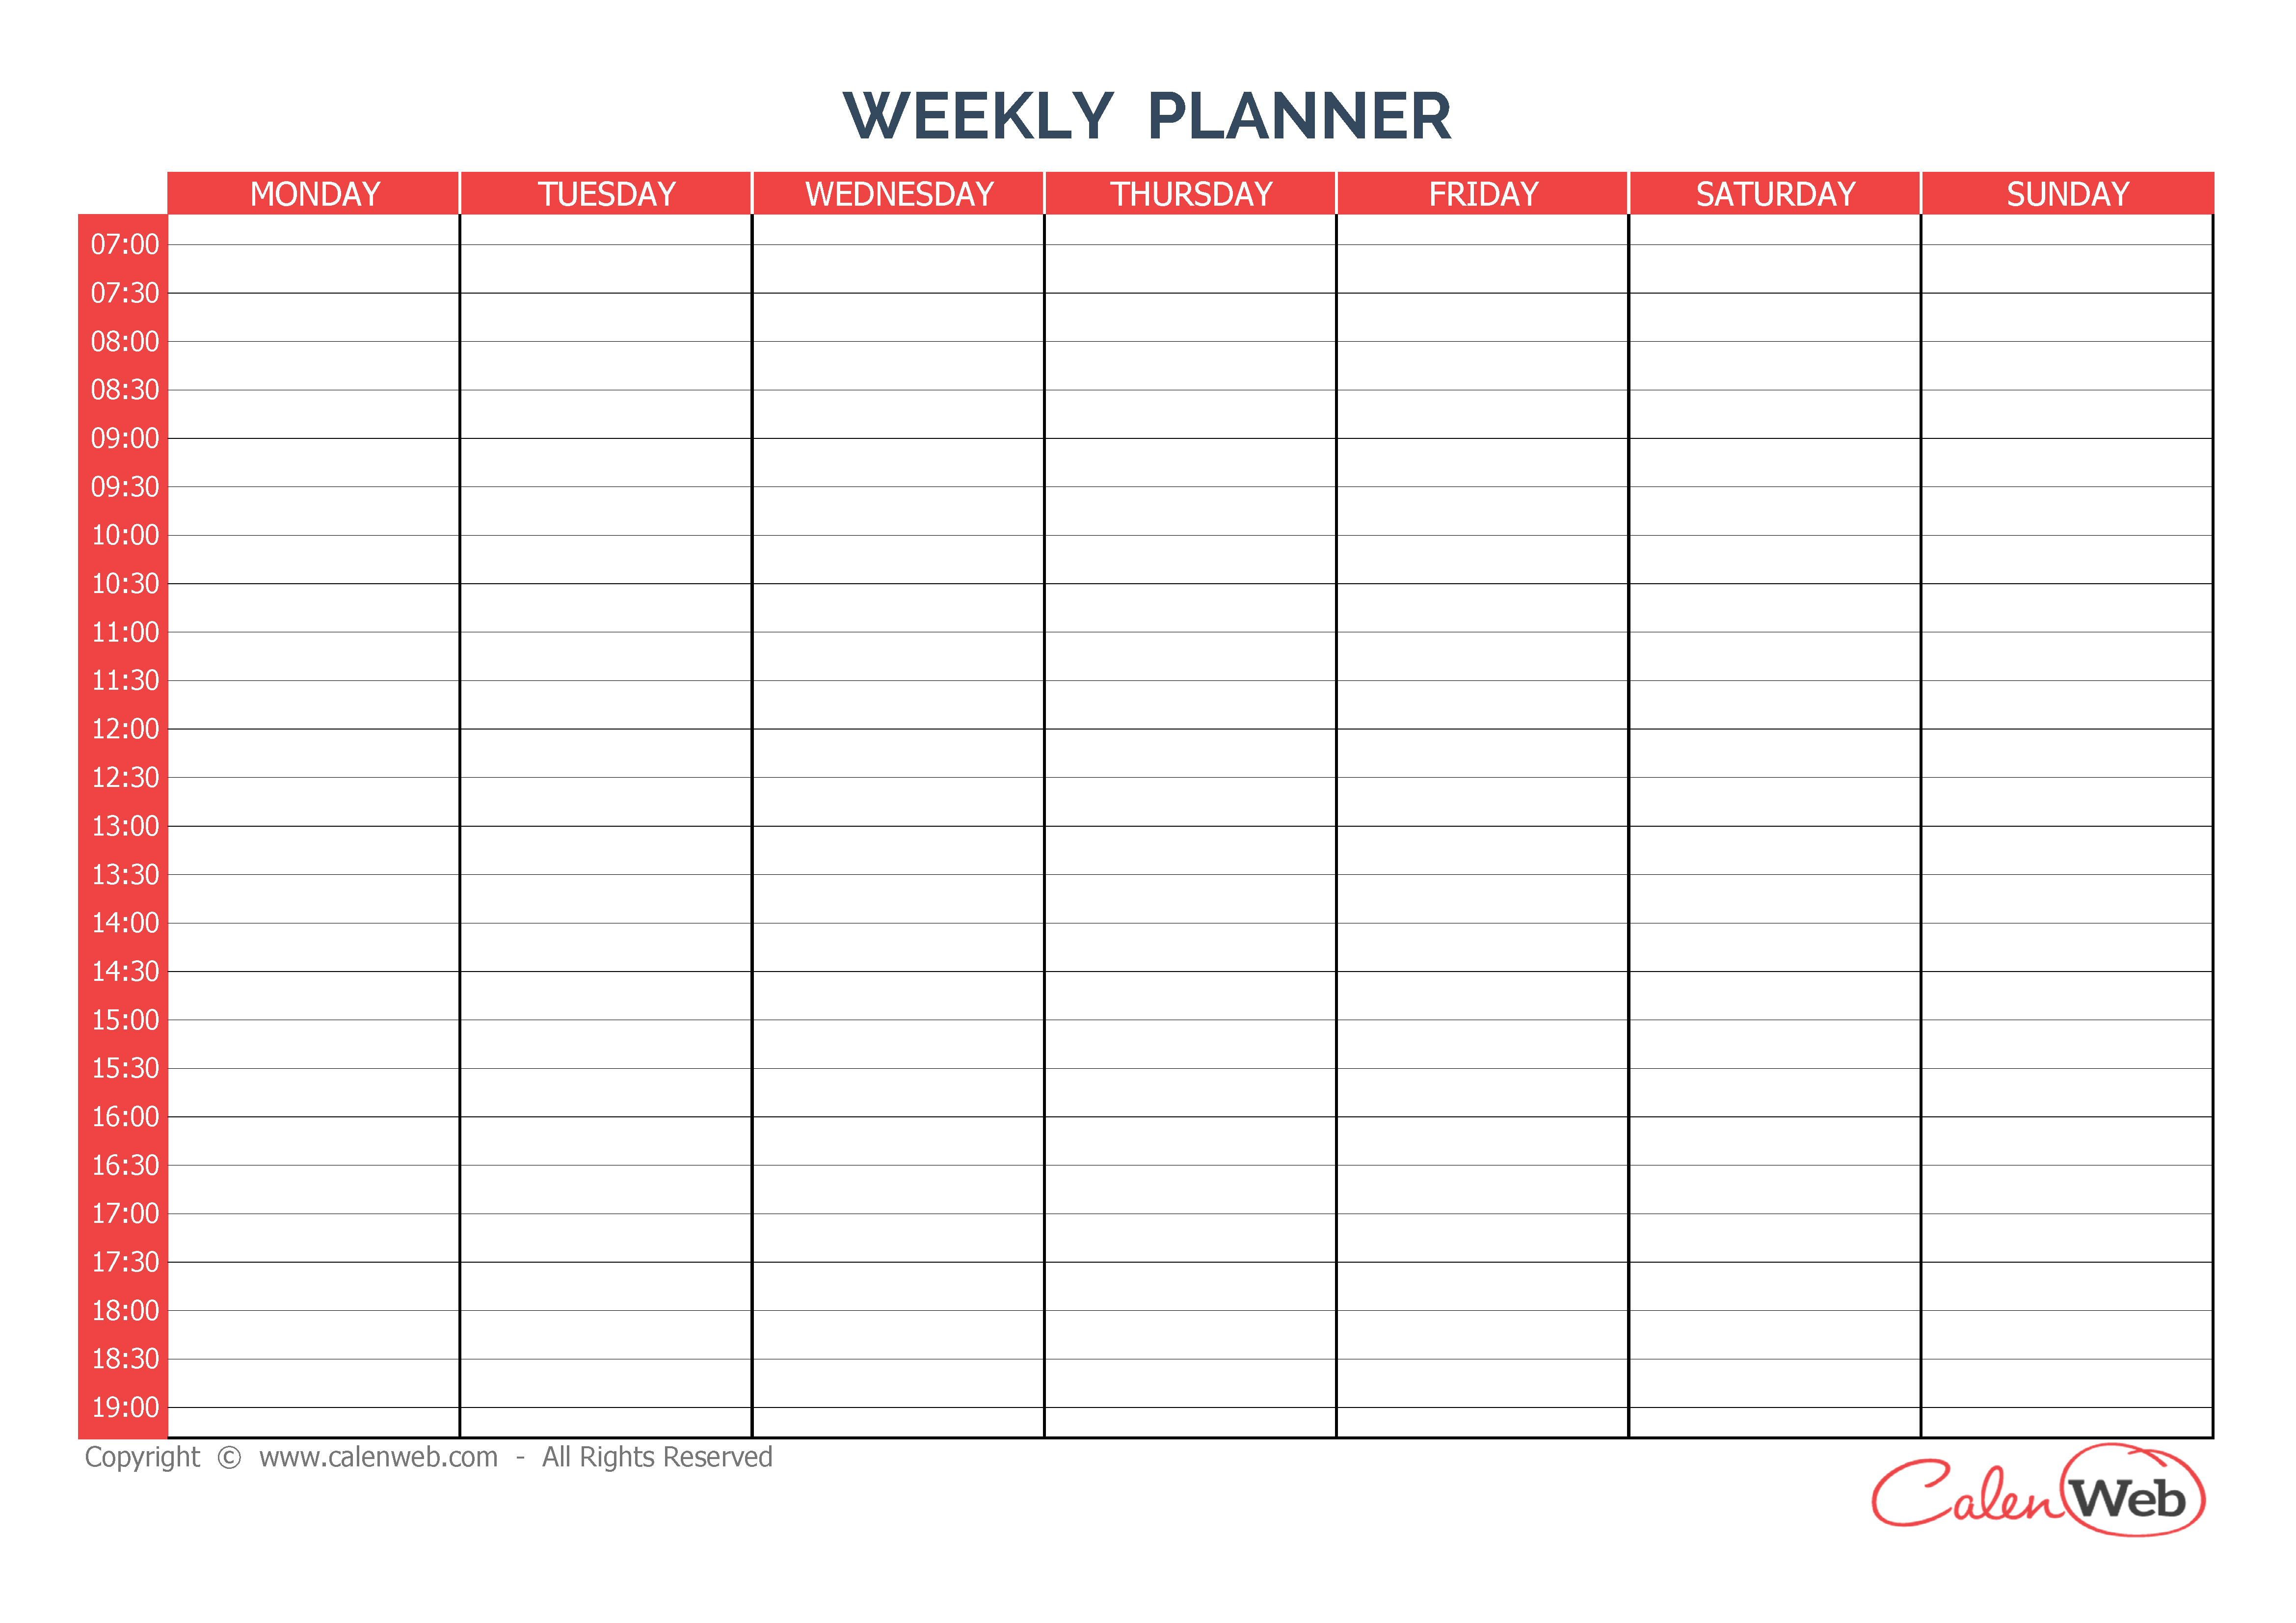 Day 7 Weekly Planner Template | Day Weekly Planner Printable ...